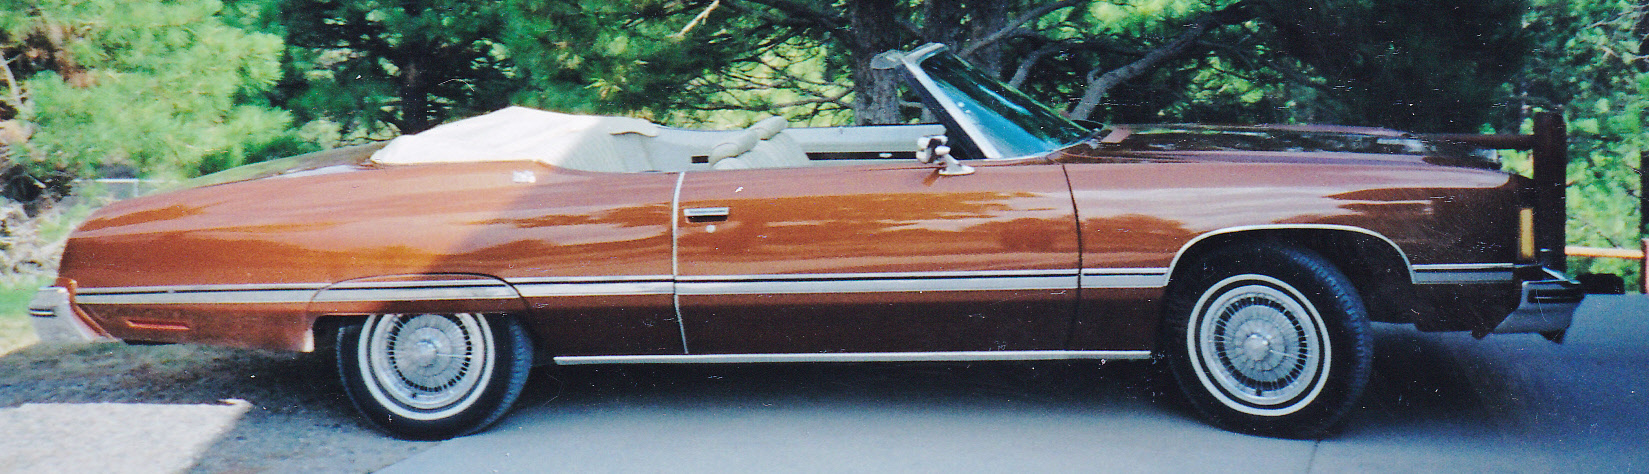 74 Chevy Caprice Convertible For Sale Html Autos Post